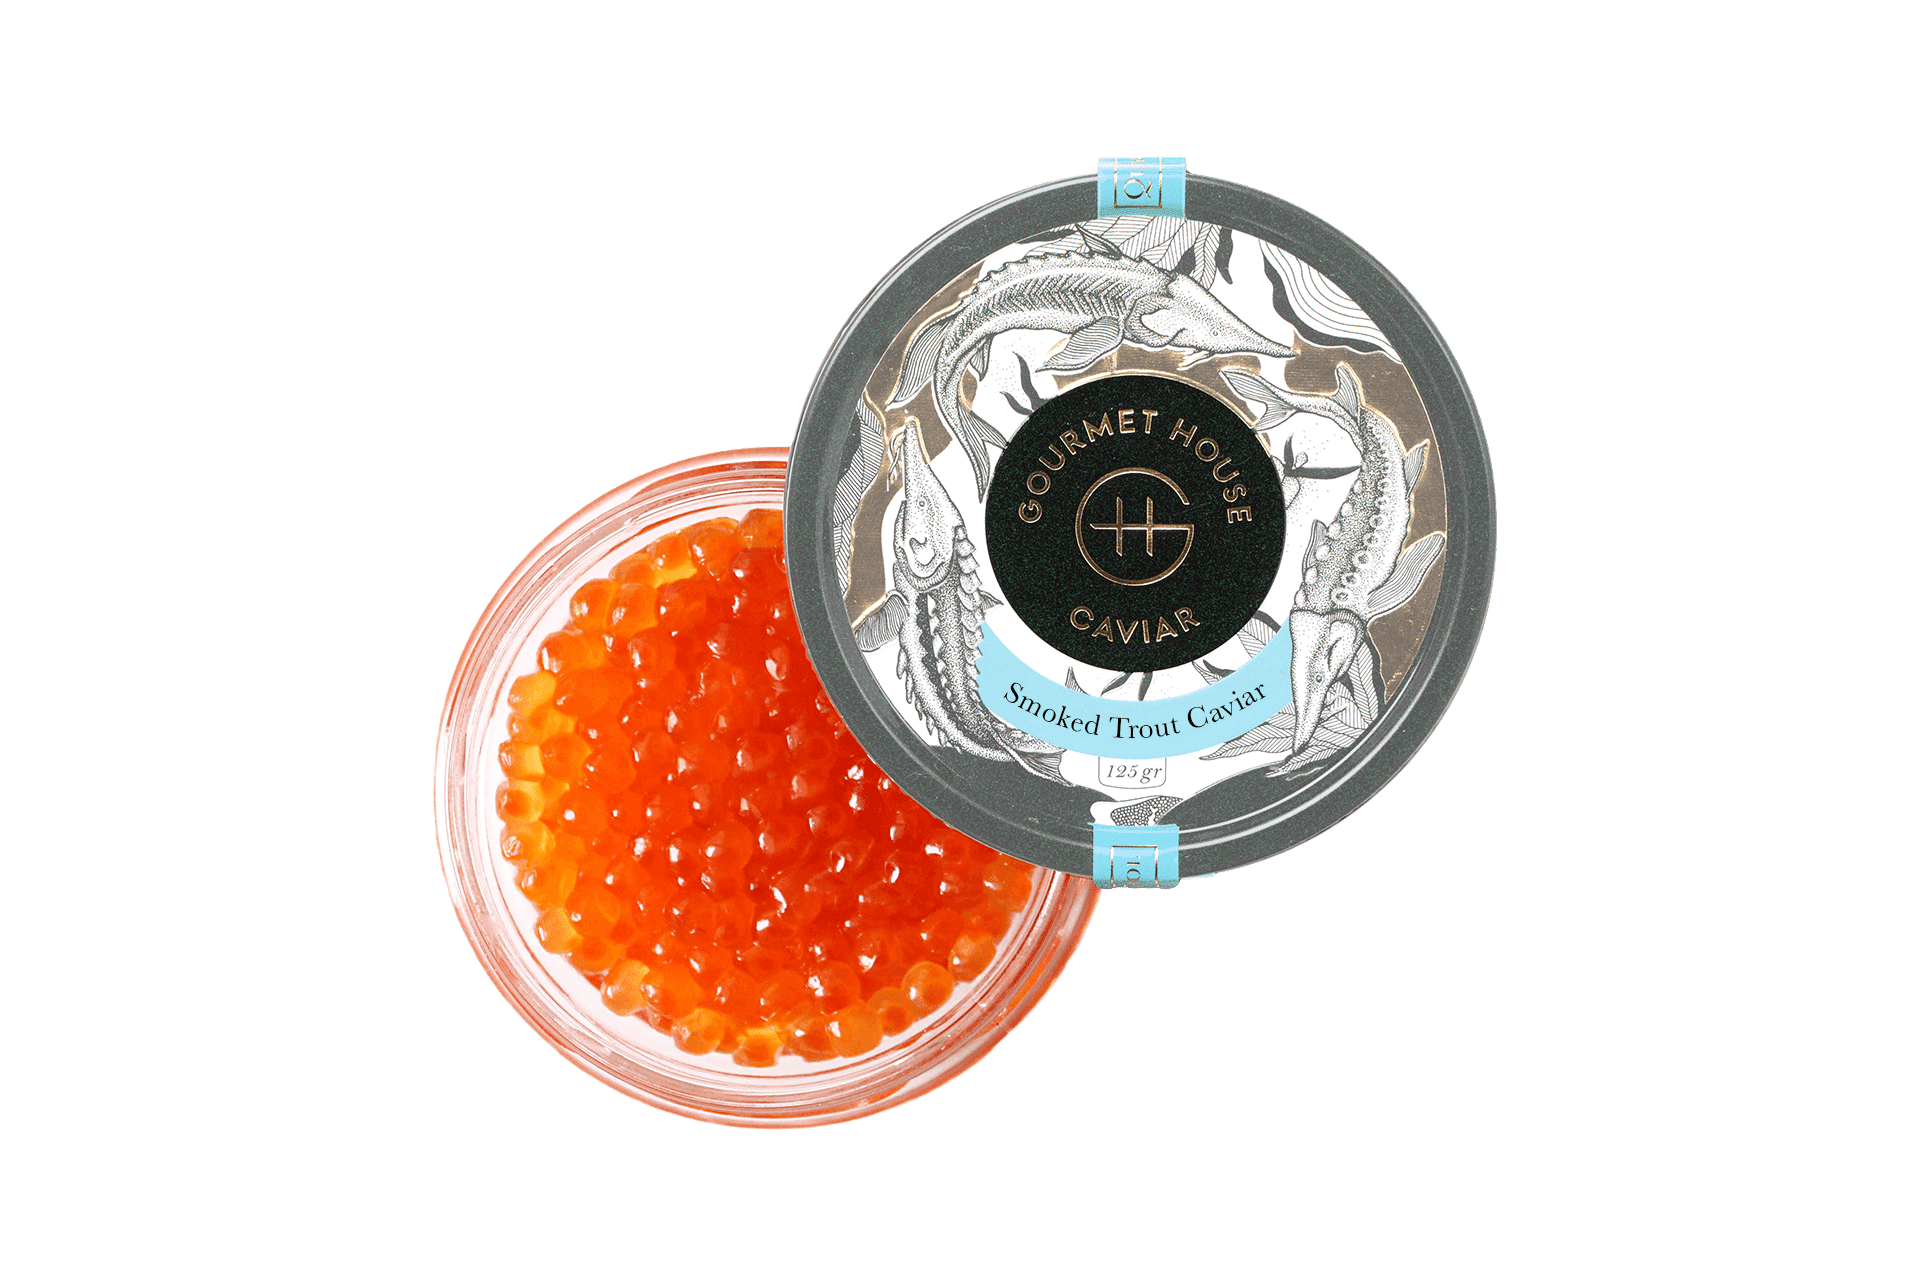 Smoked Trout Caviar